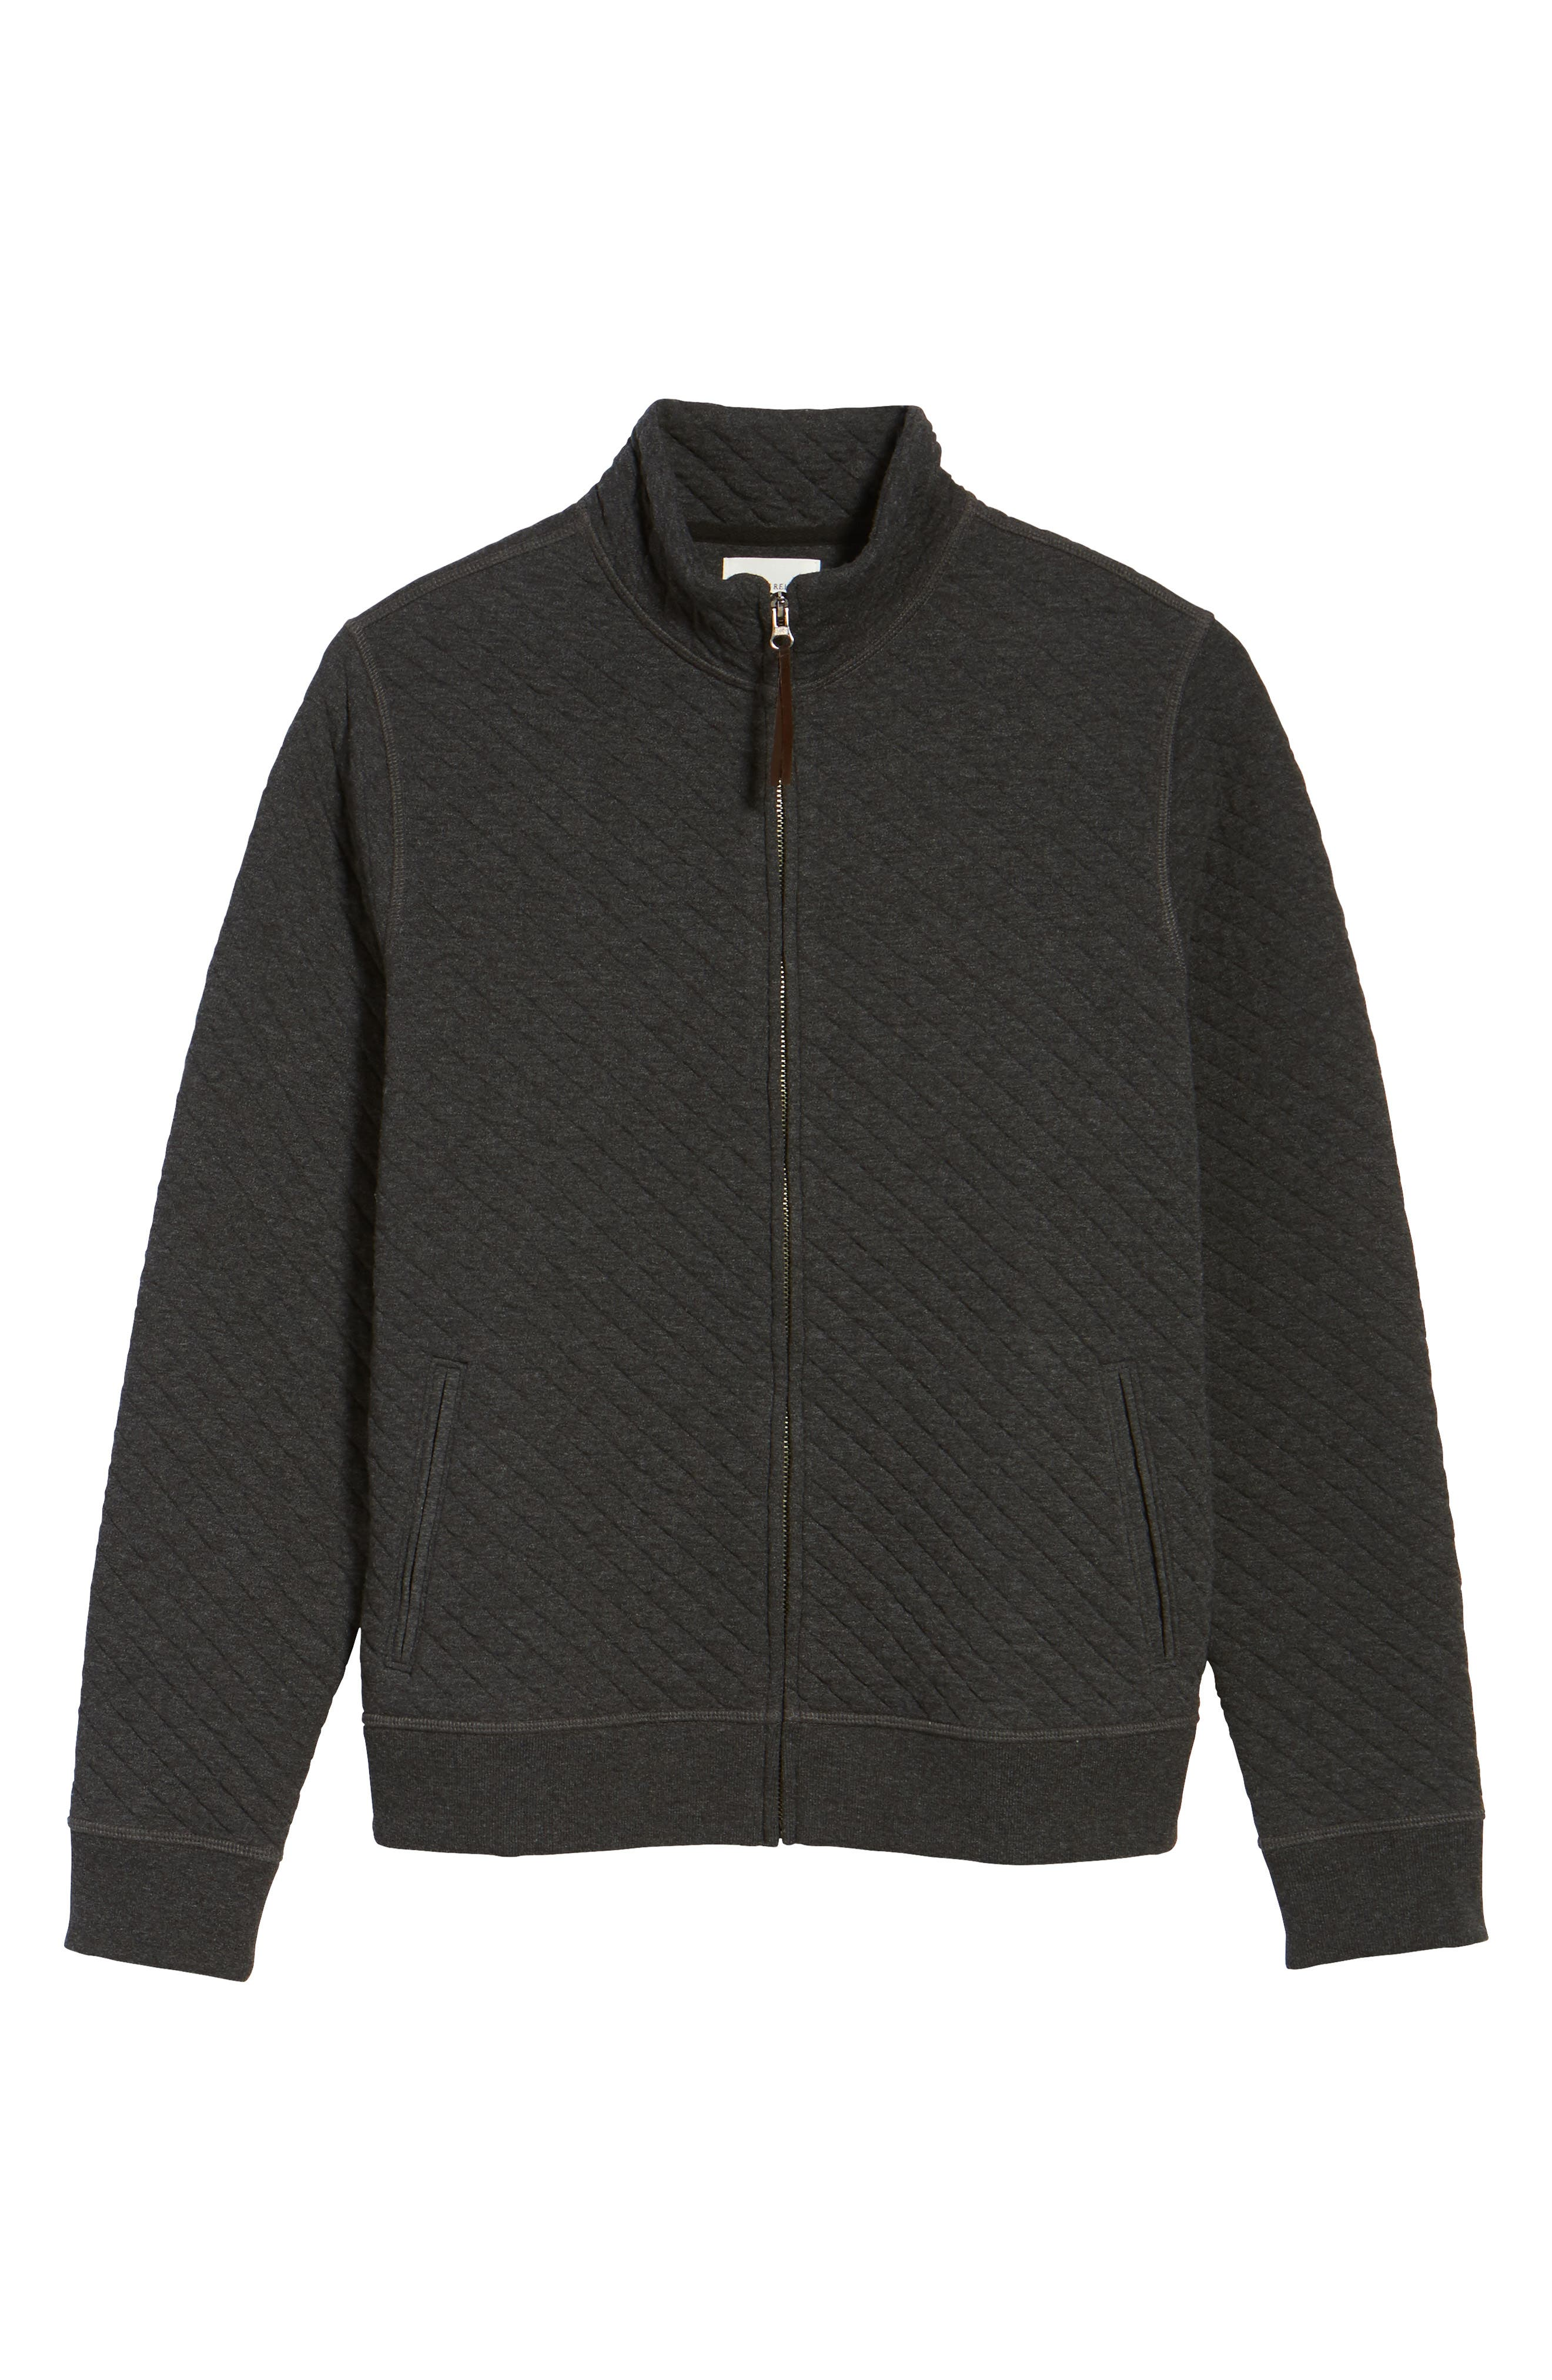 Diamond Quilted Jacket,                             Alternate thumbnail 6, color,                             020